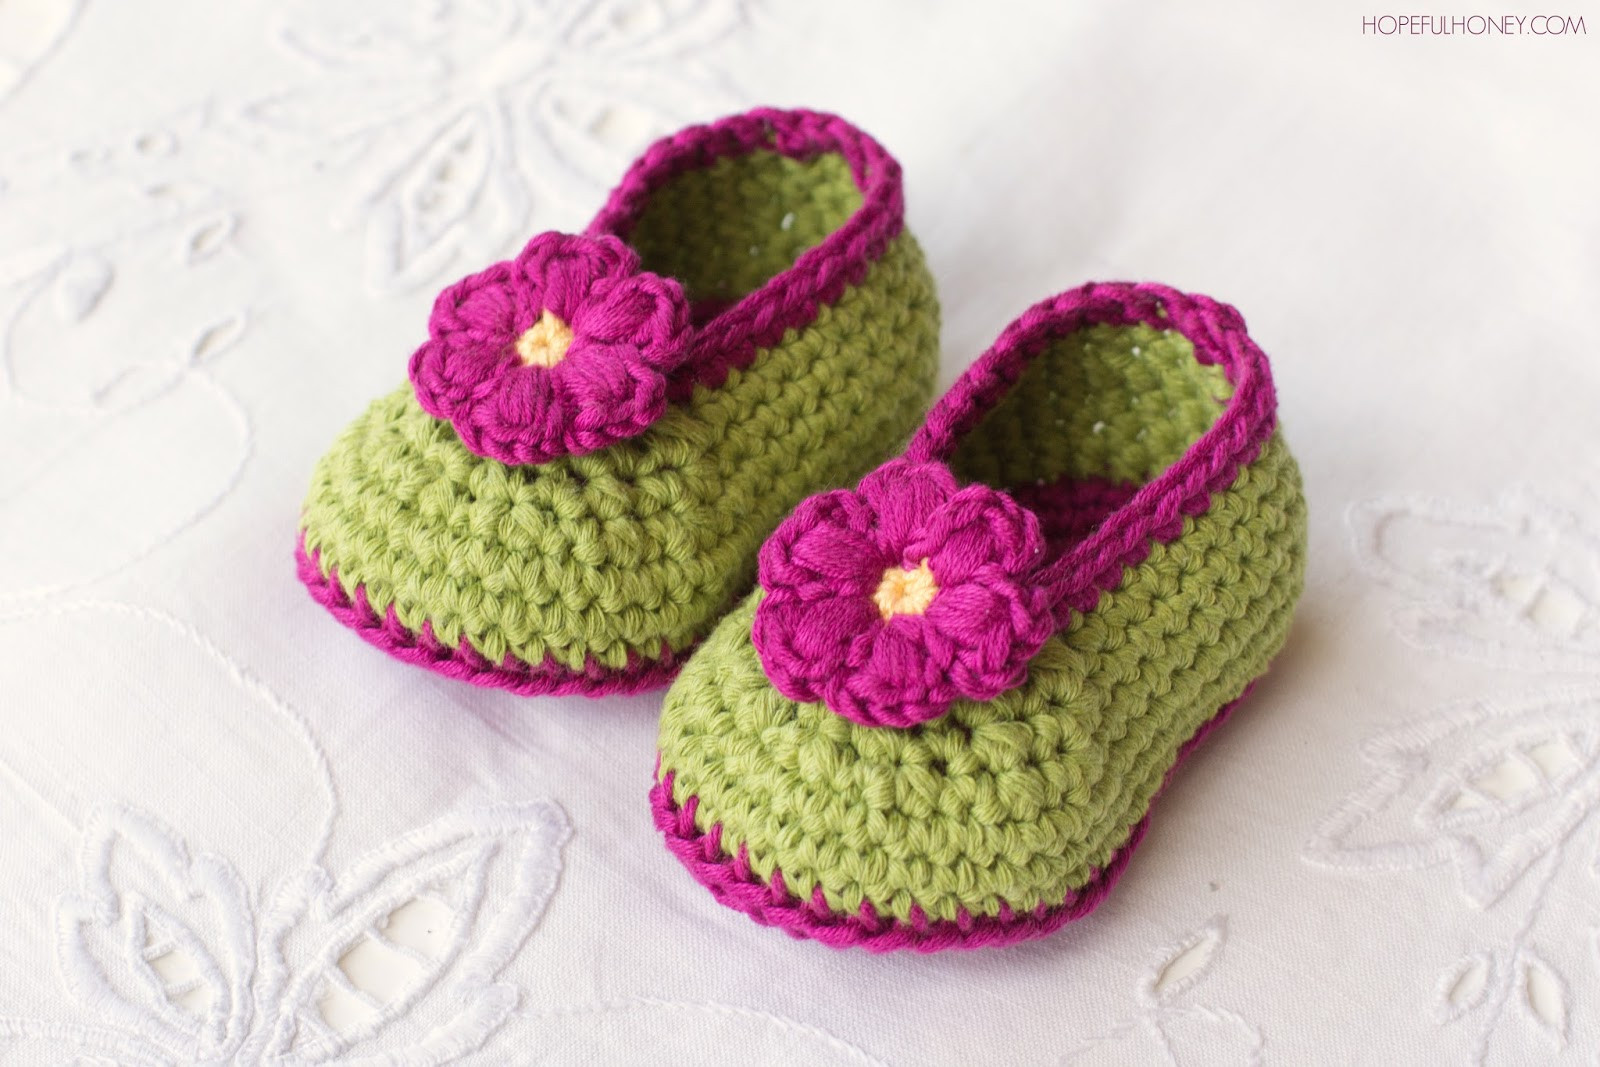 Awesome Free Crochet Pattern for toddler Slippers Free Crochet Patterns for Newborns Of Unique 40 Photos Free Crochet Patterns for Newborns